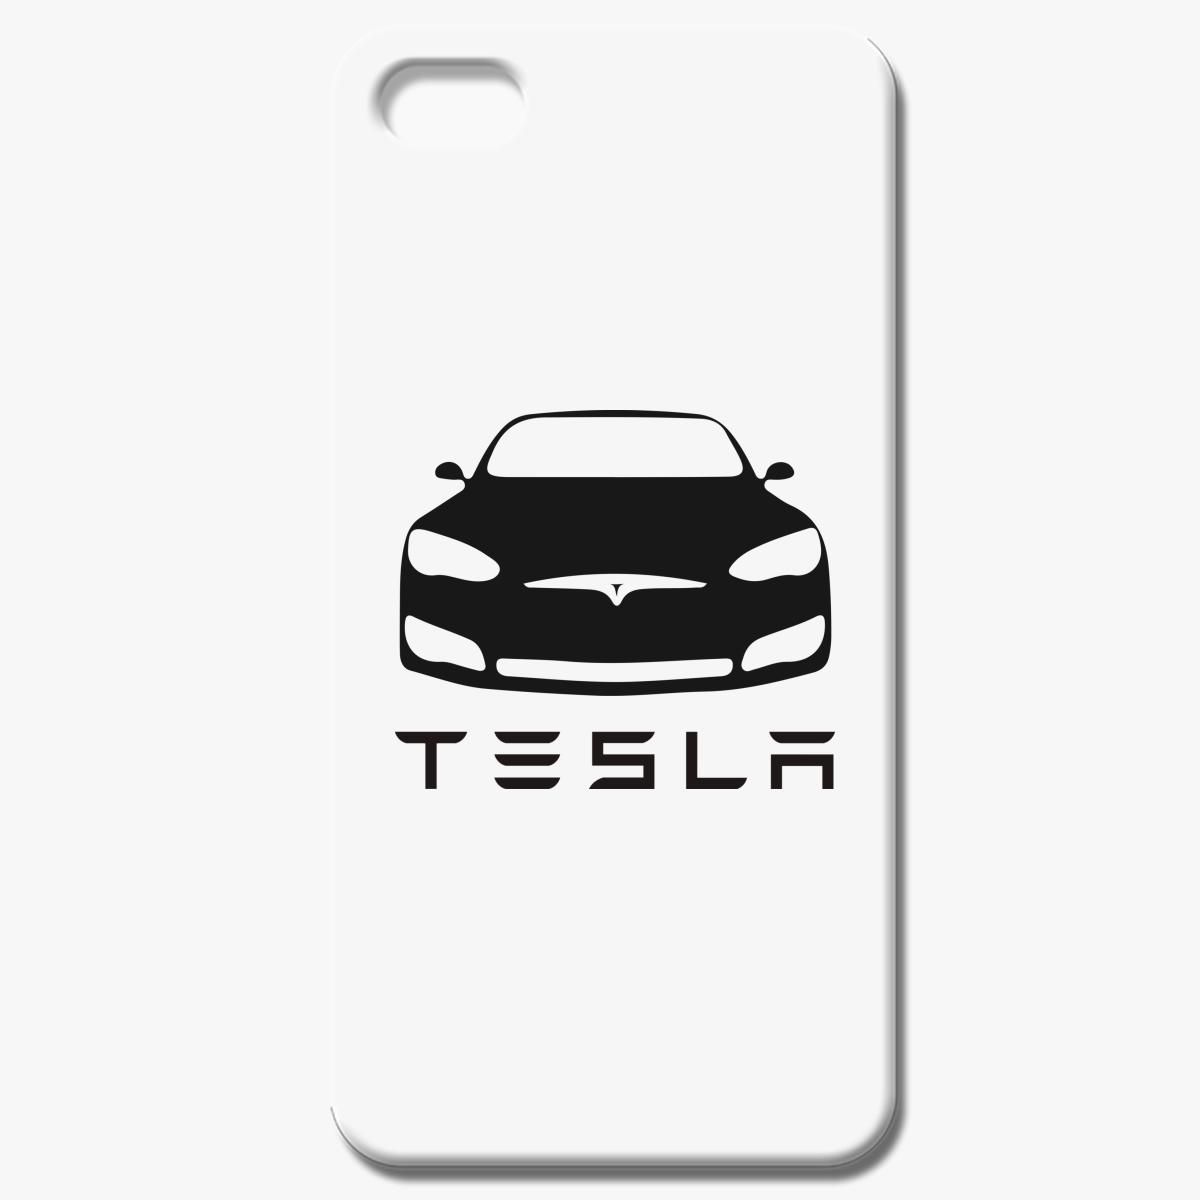 Tesla Car Black Iphone 7 Case